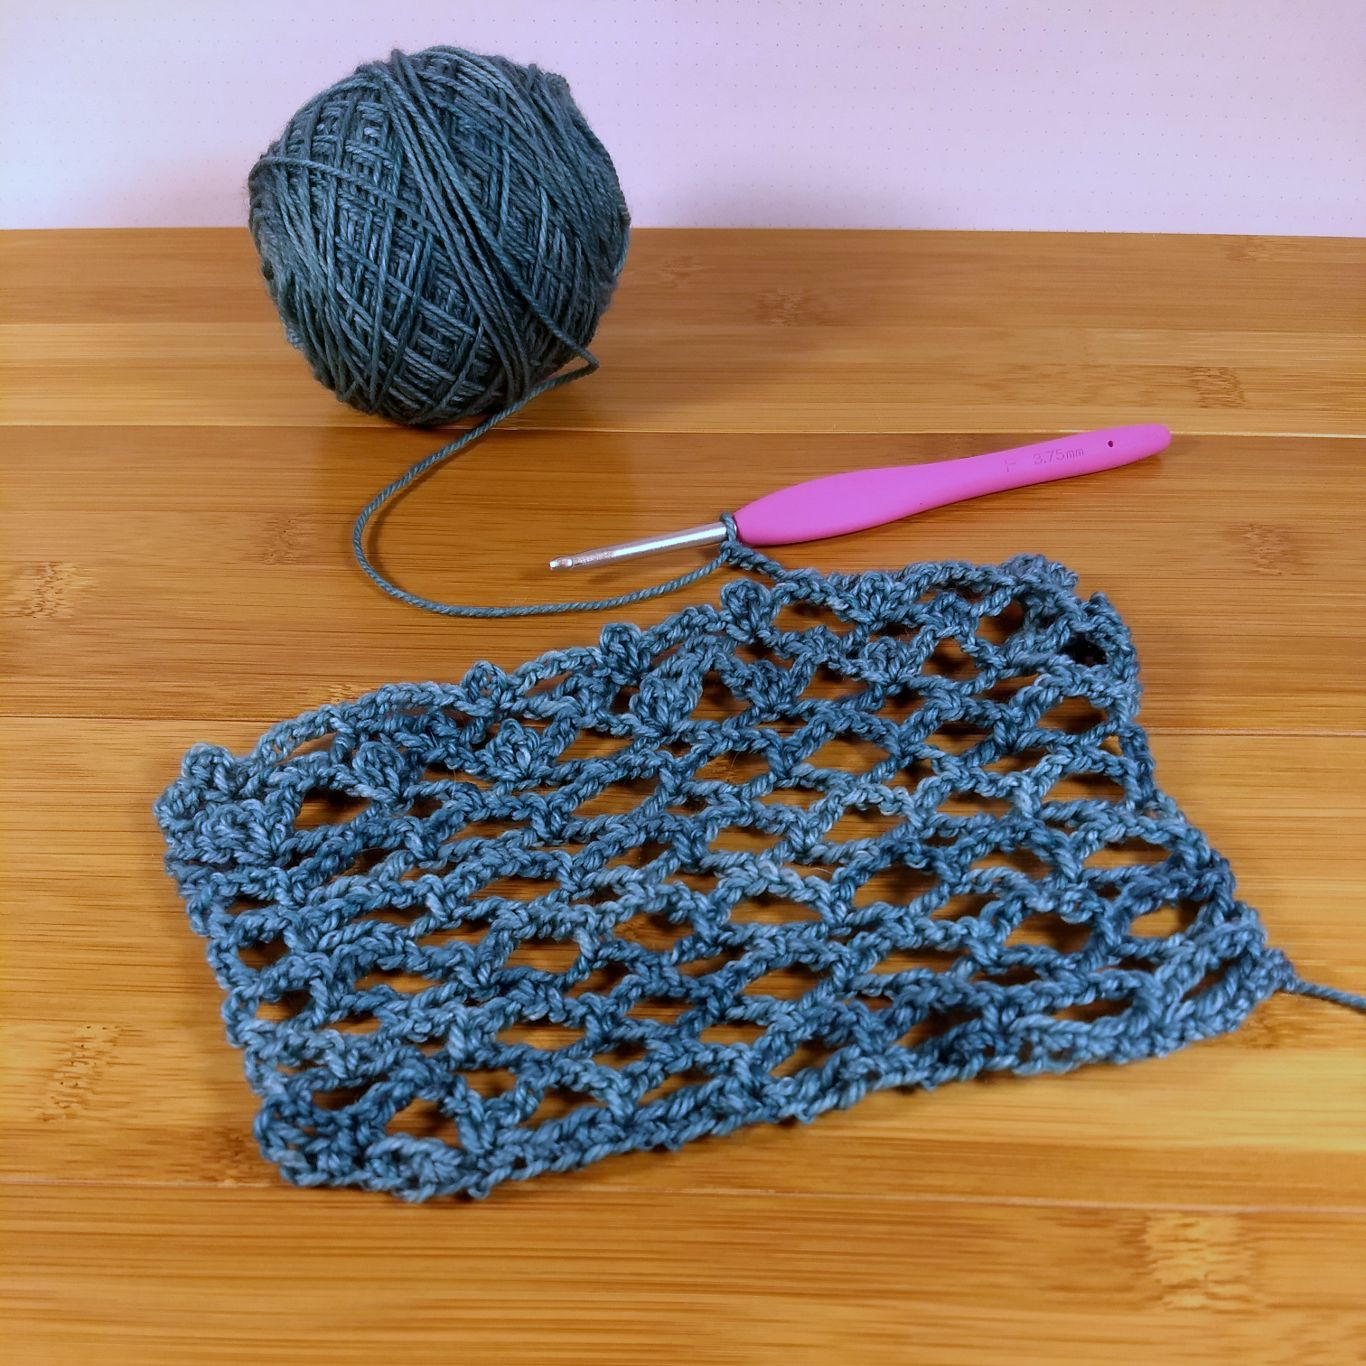 Squishy crocheted swatch for VLSI by Penny Shima Glanz